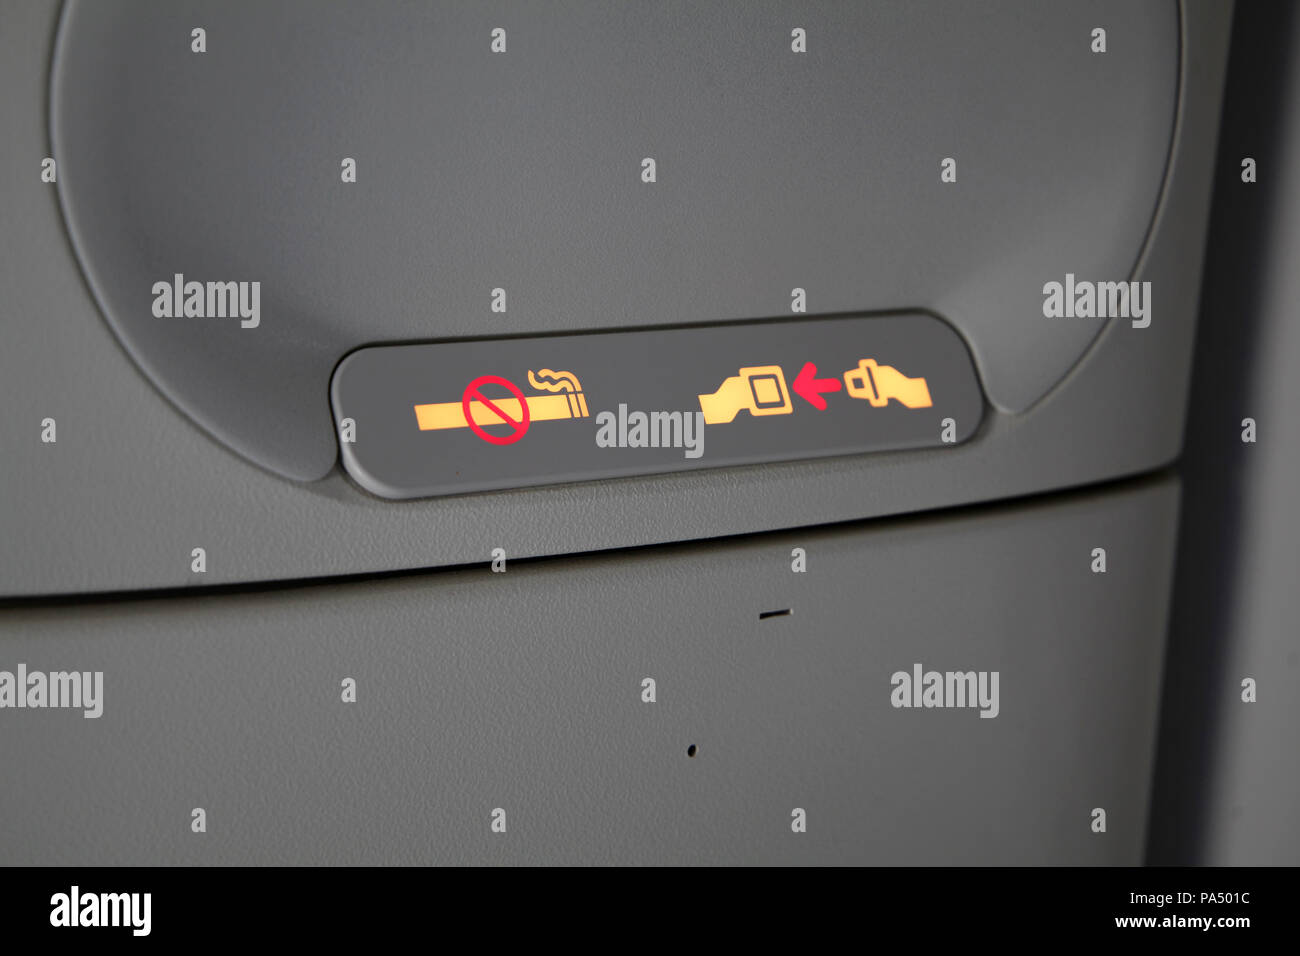 no smoking & fasten seat belts sign on a passenger aircraft - Stock Image